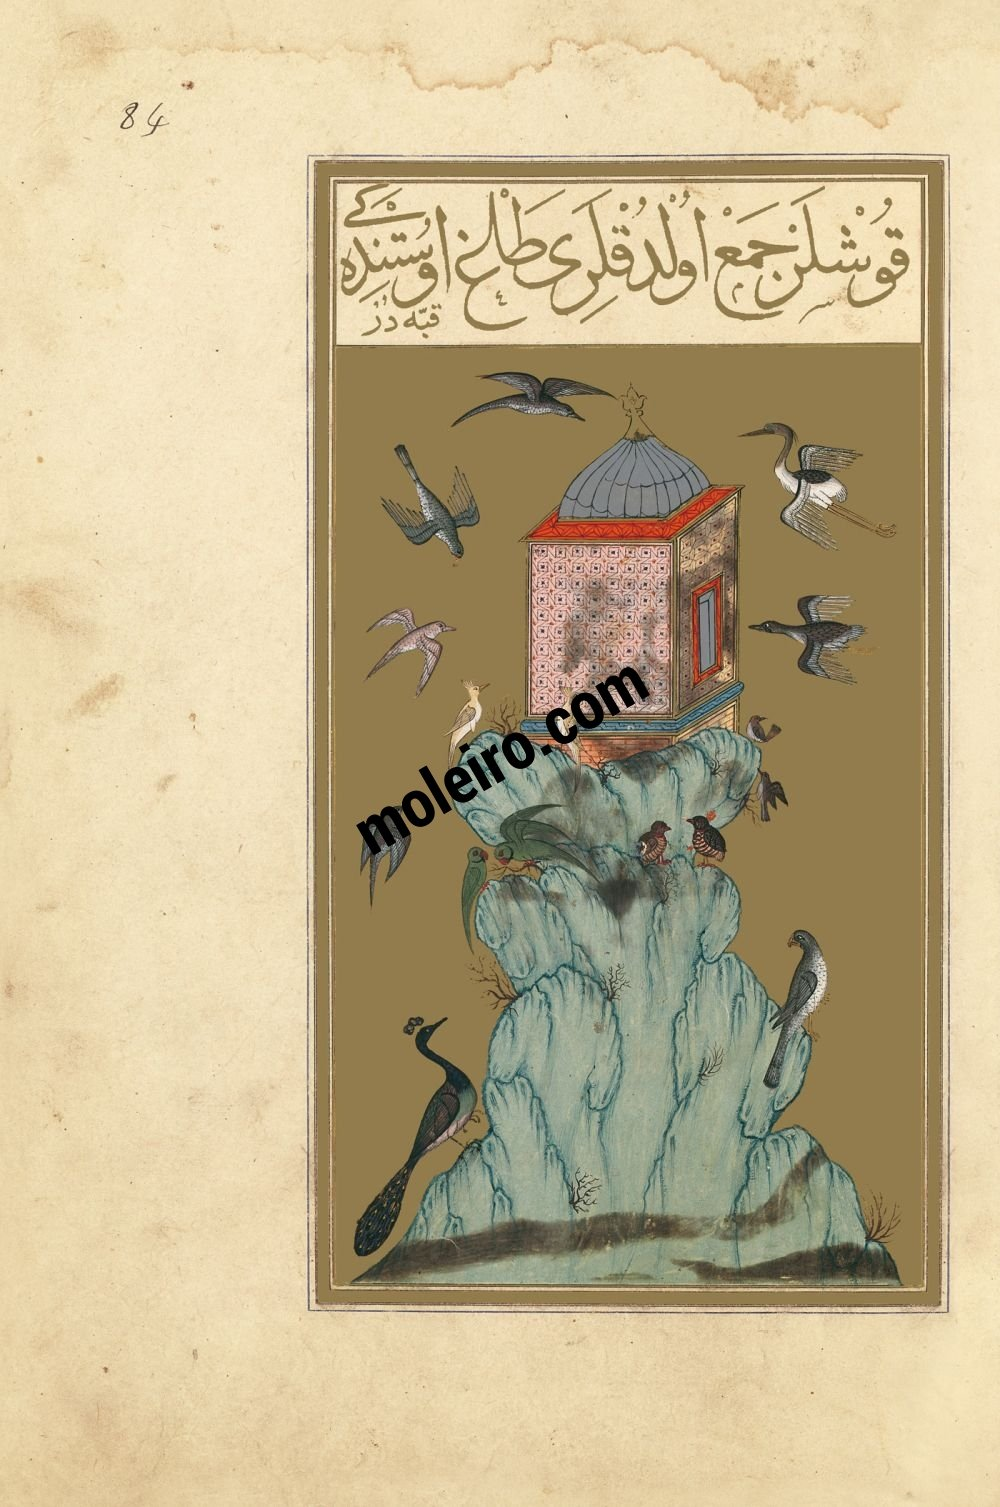 The Book of Felicity f. 84r, The Mountain of the Birds